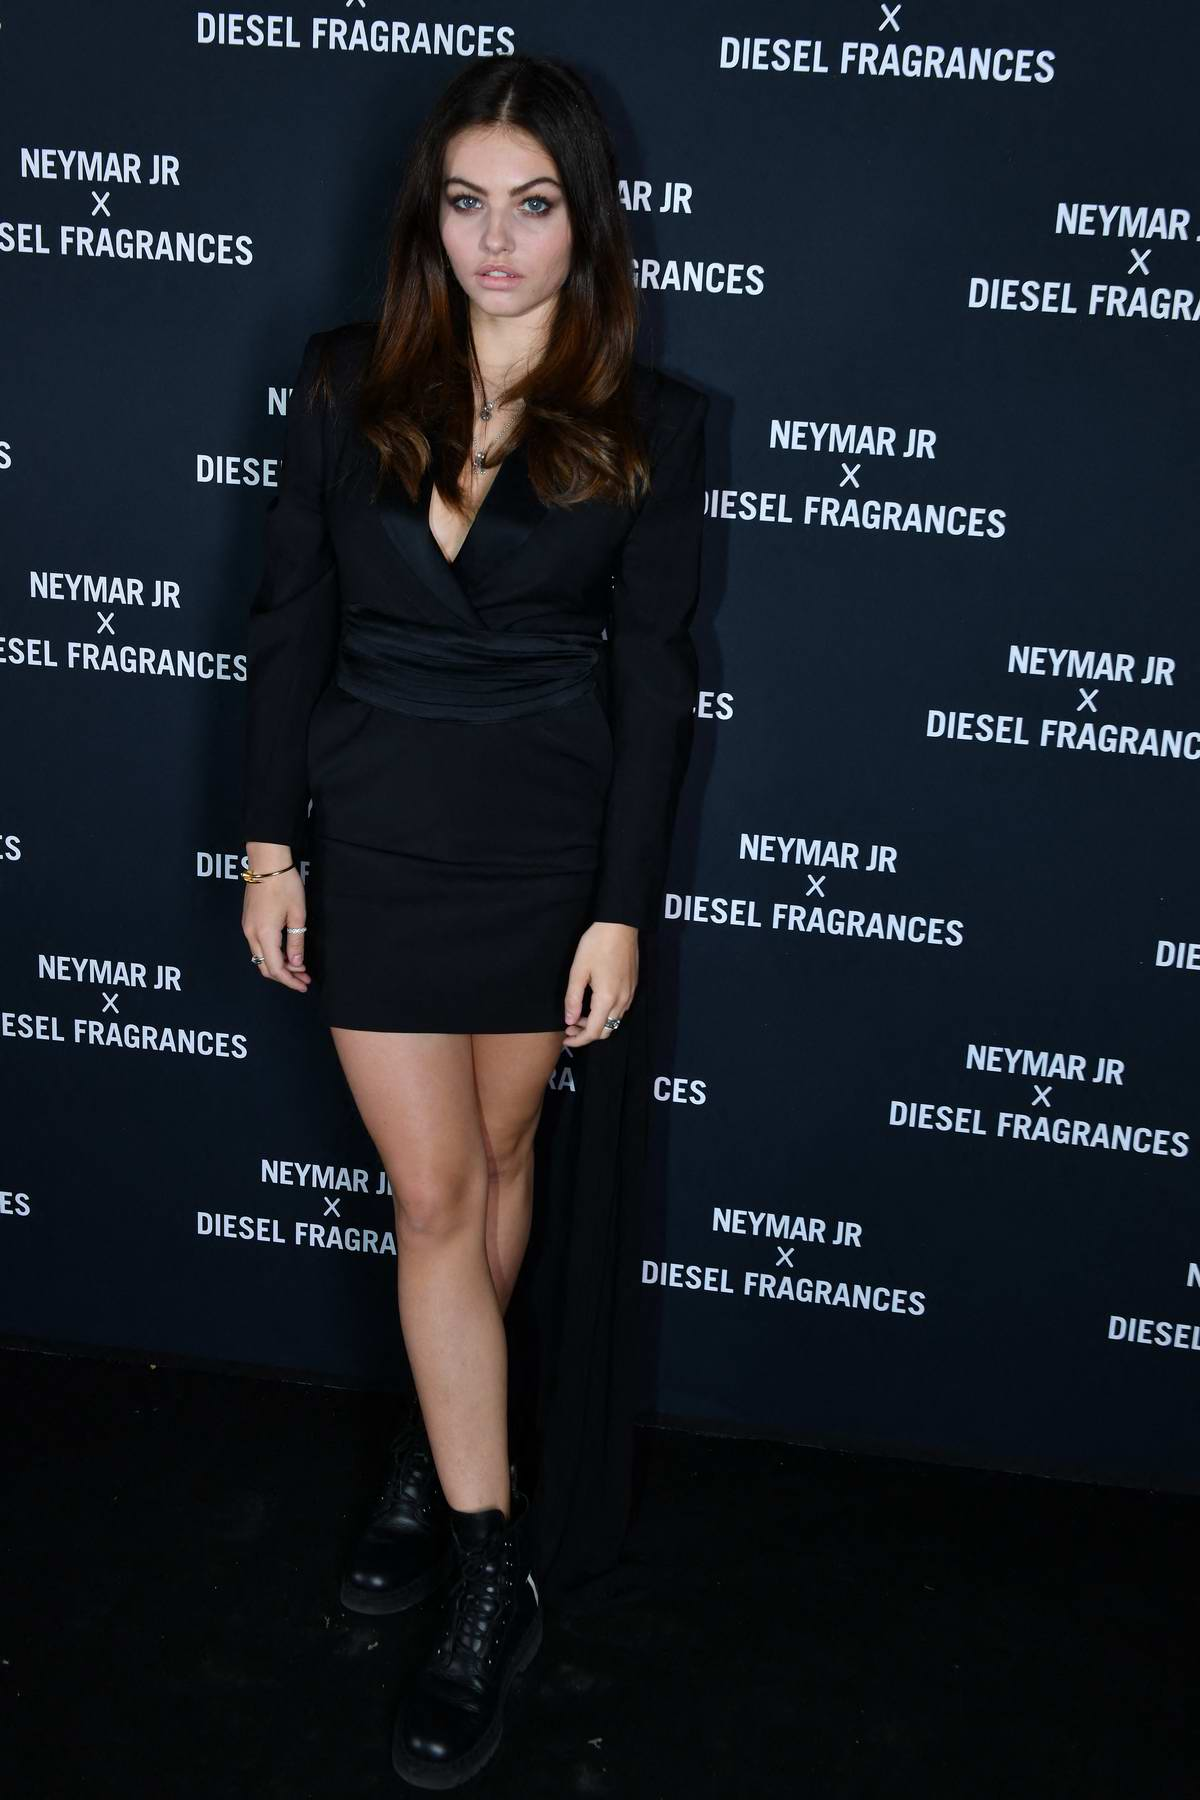 Thylane Blondeau attends the Neymar Jr x Diesel Perfume Launch Party in Paris, France